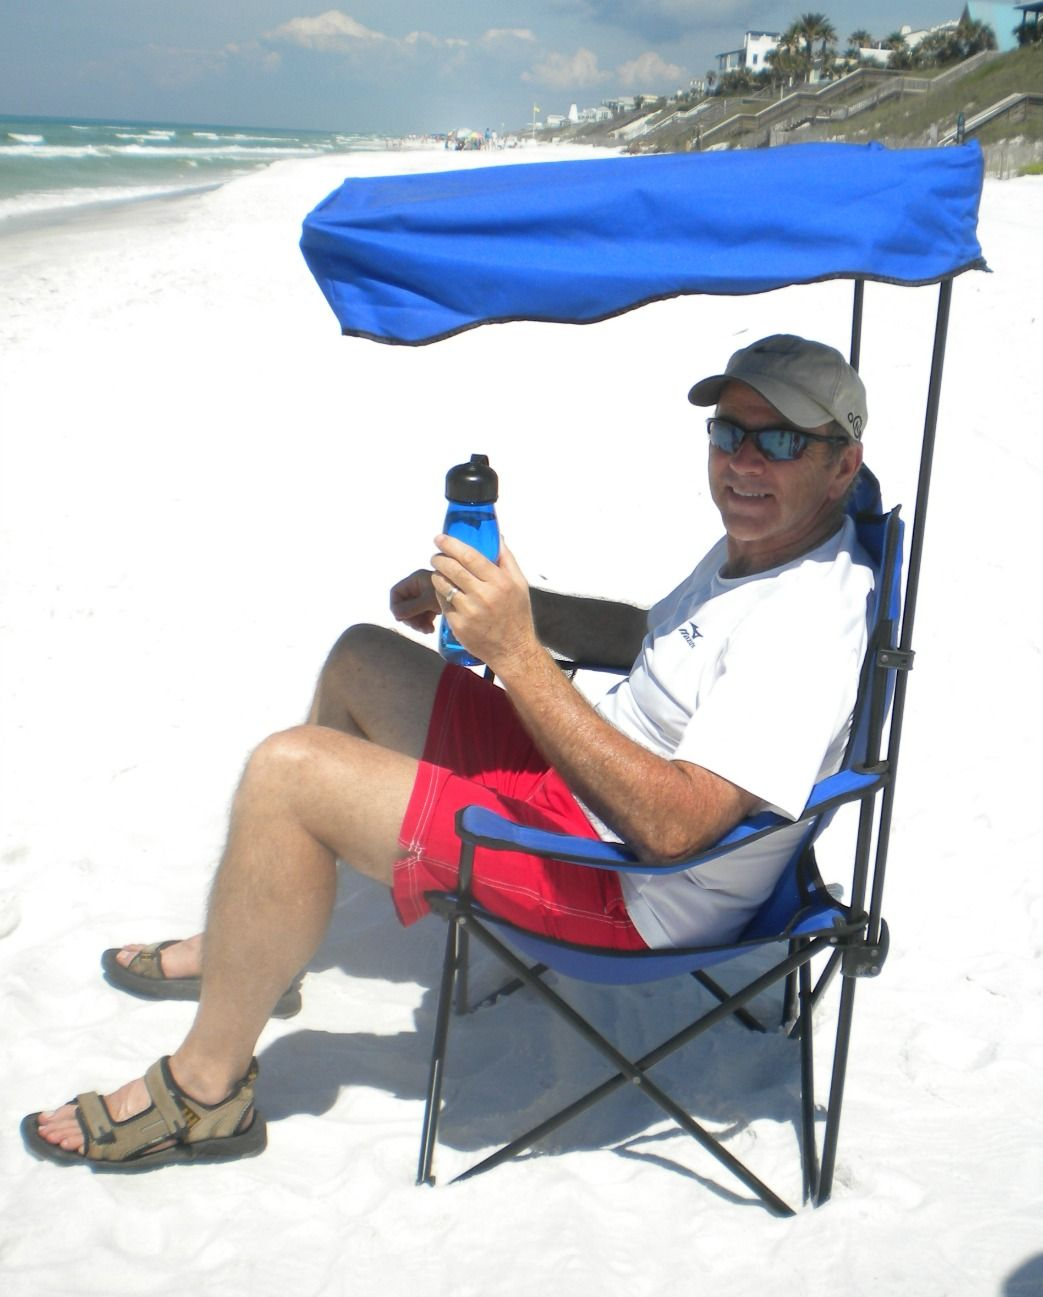 Bring A Beach Chair With Canopy For Your Own Spot Of Shade To Protect Face And Neck From The Sun